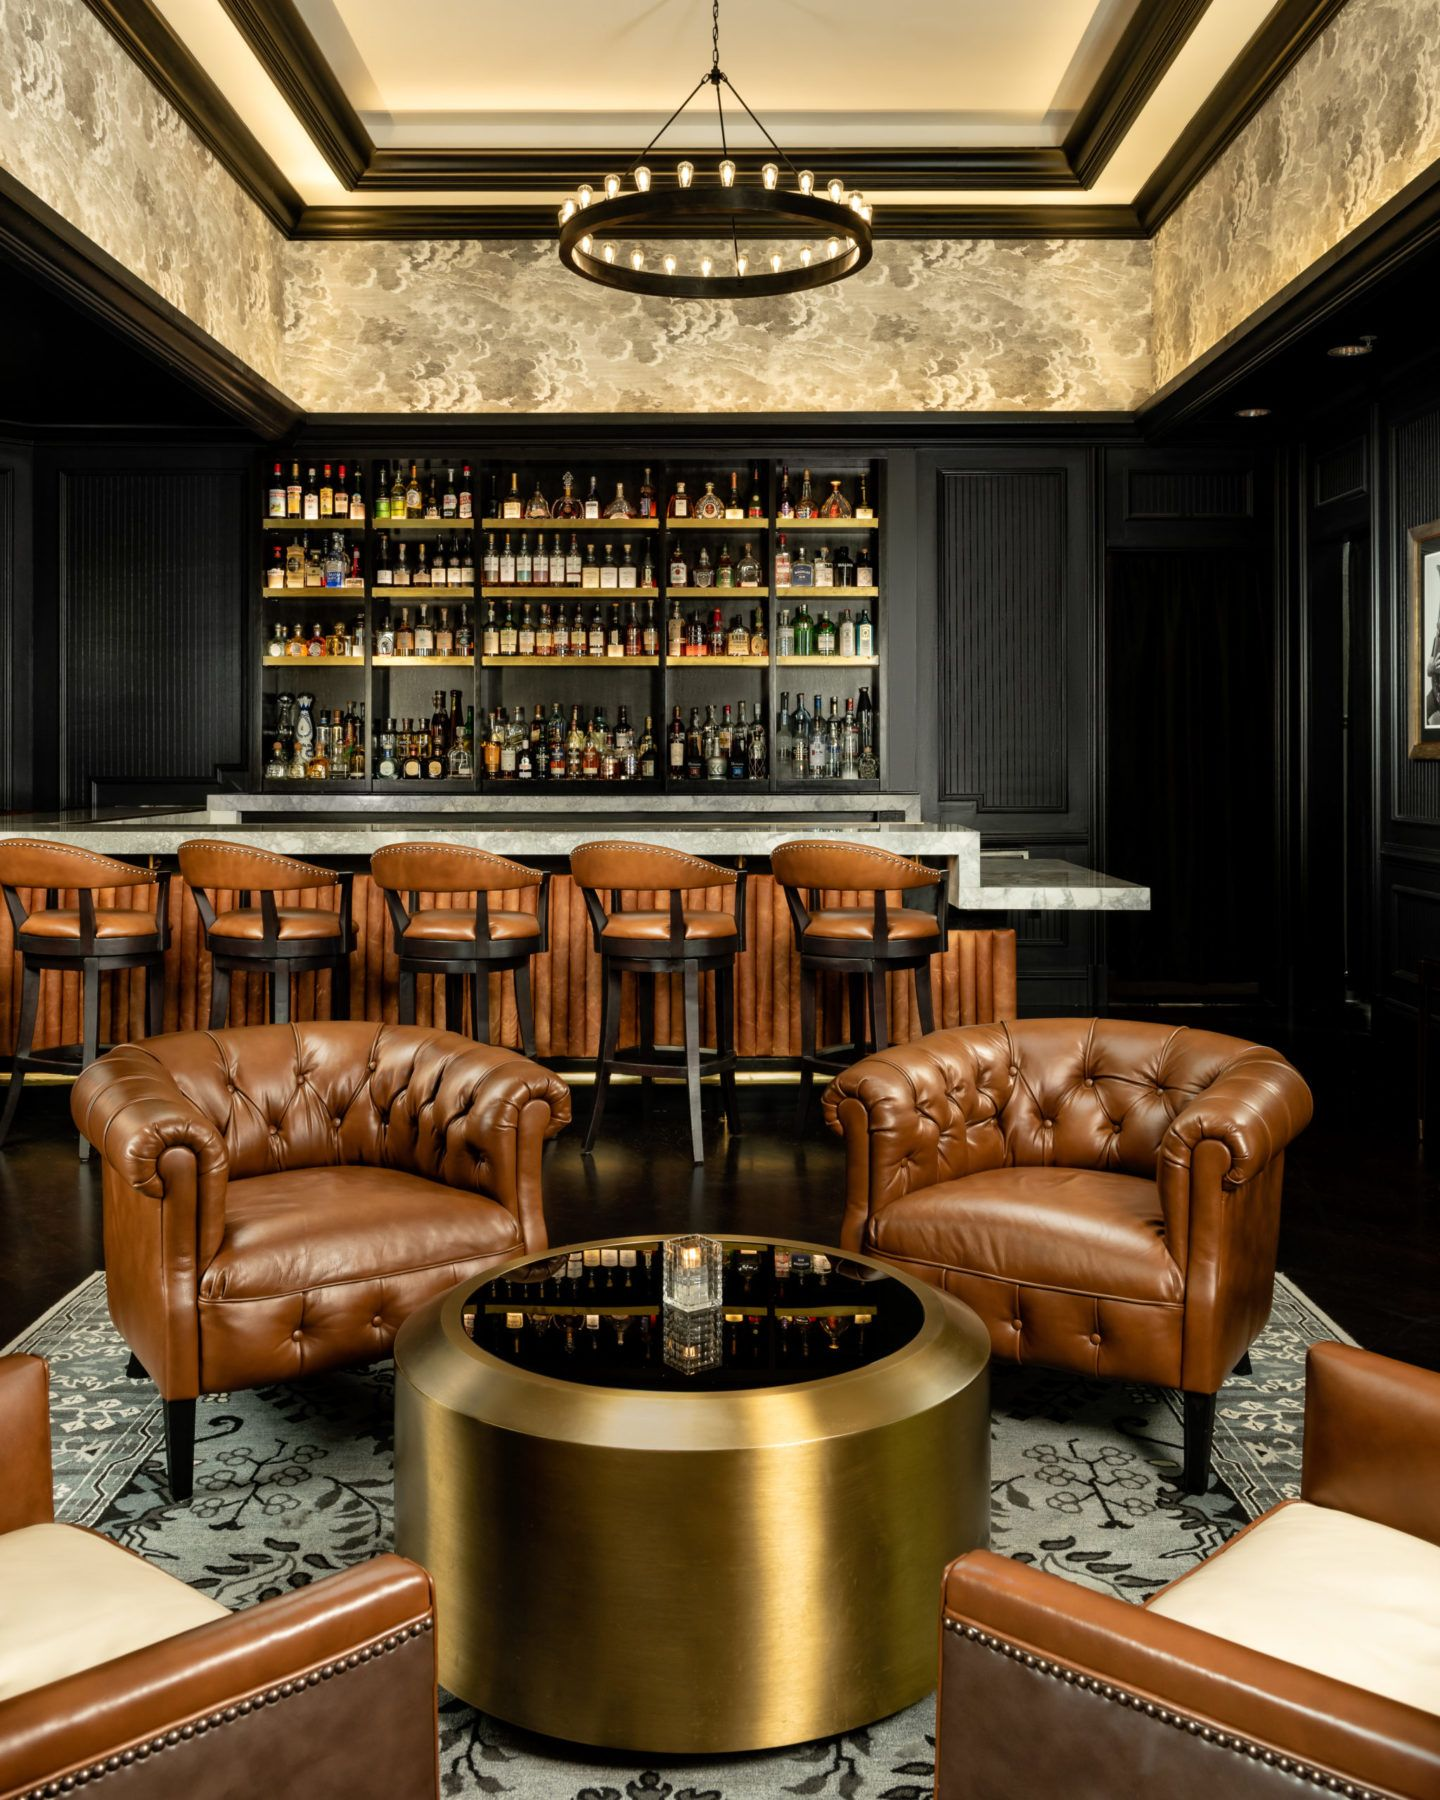 Bar view with bronze and leather furniture at The Commodore